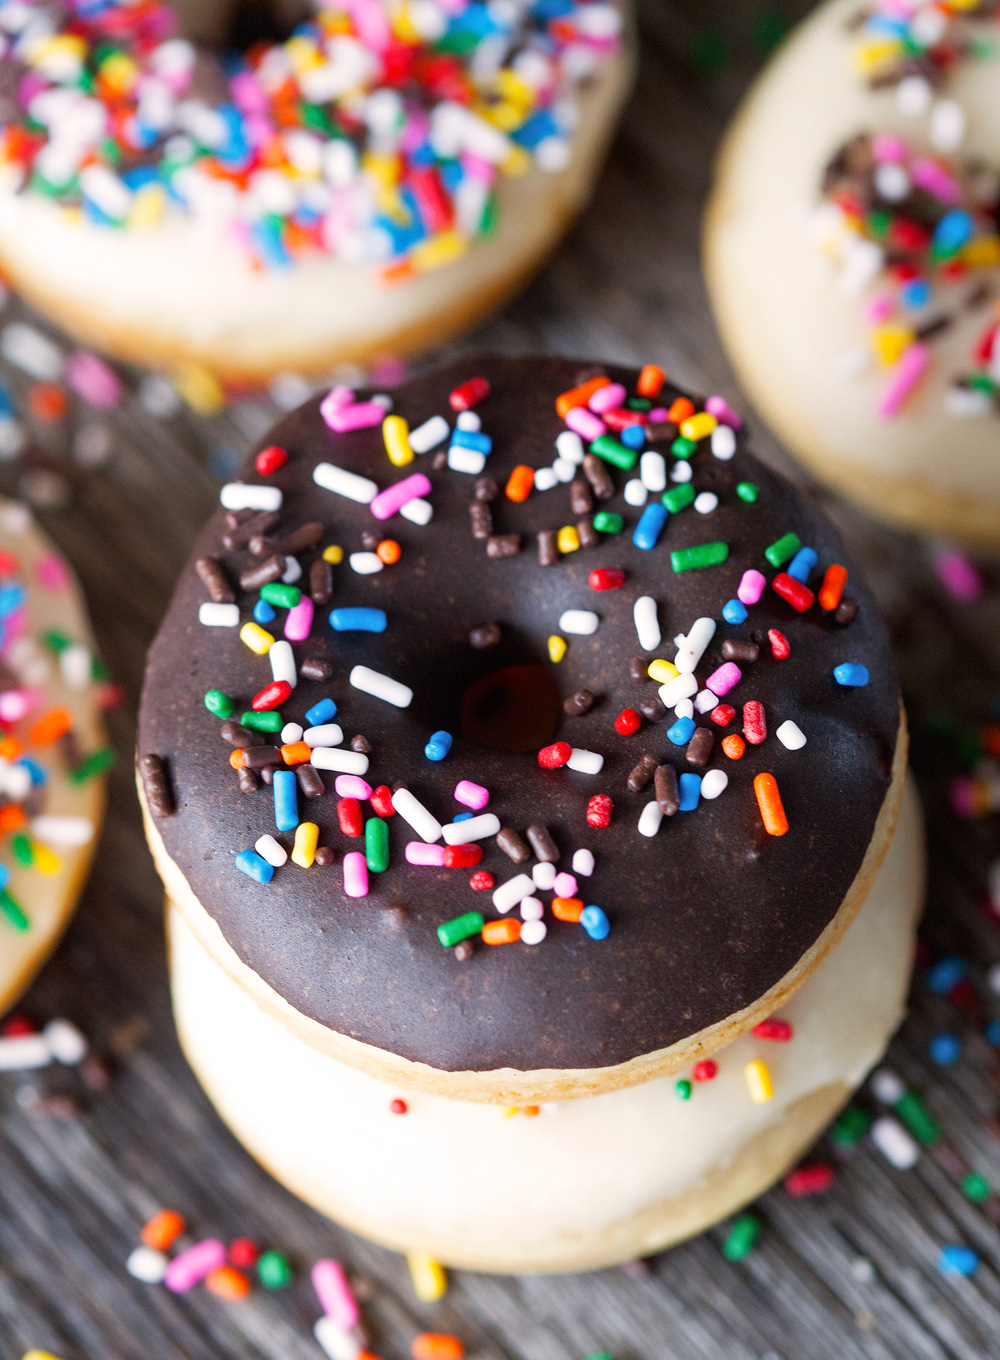 Bakery-Style Doughnuts by Deliciously Yum!